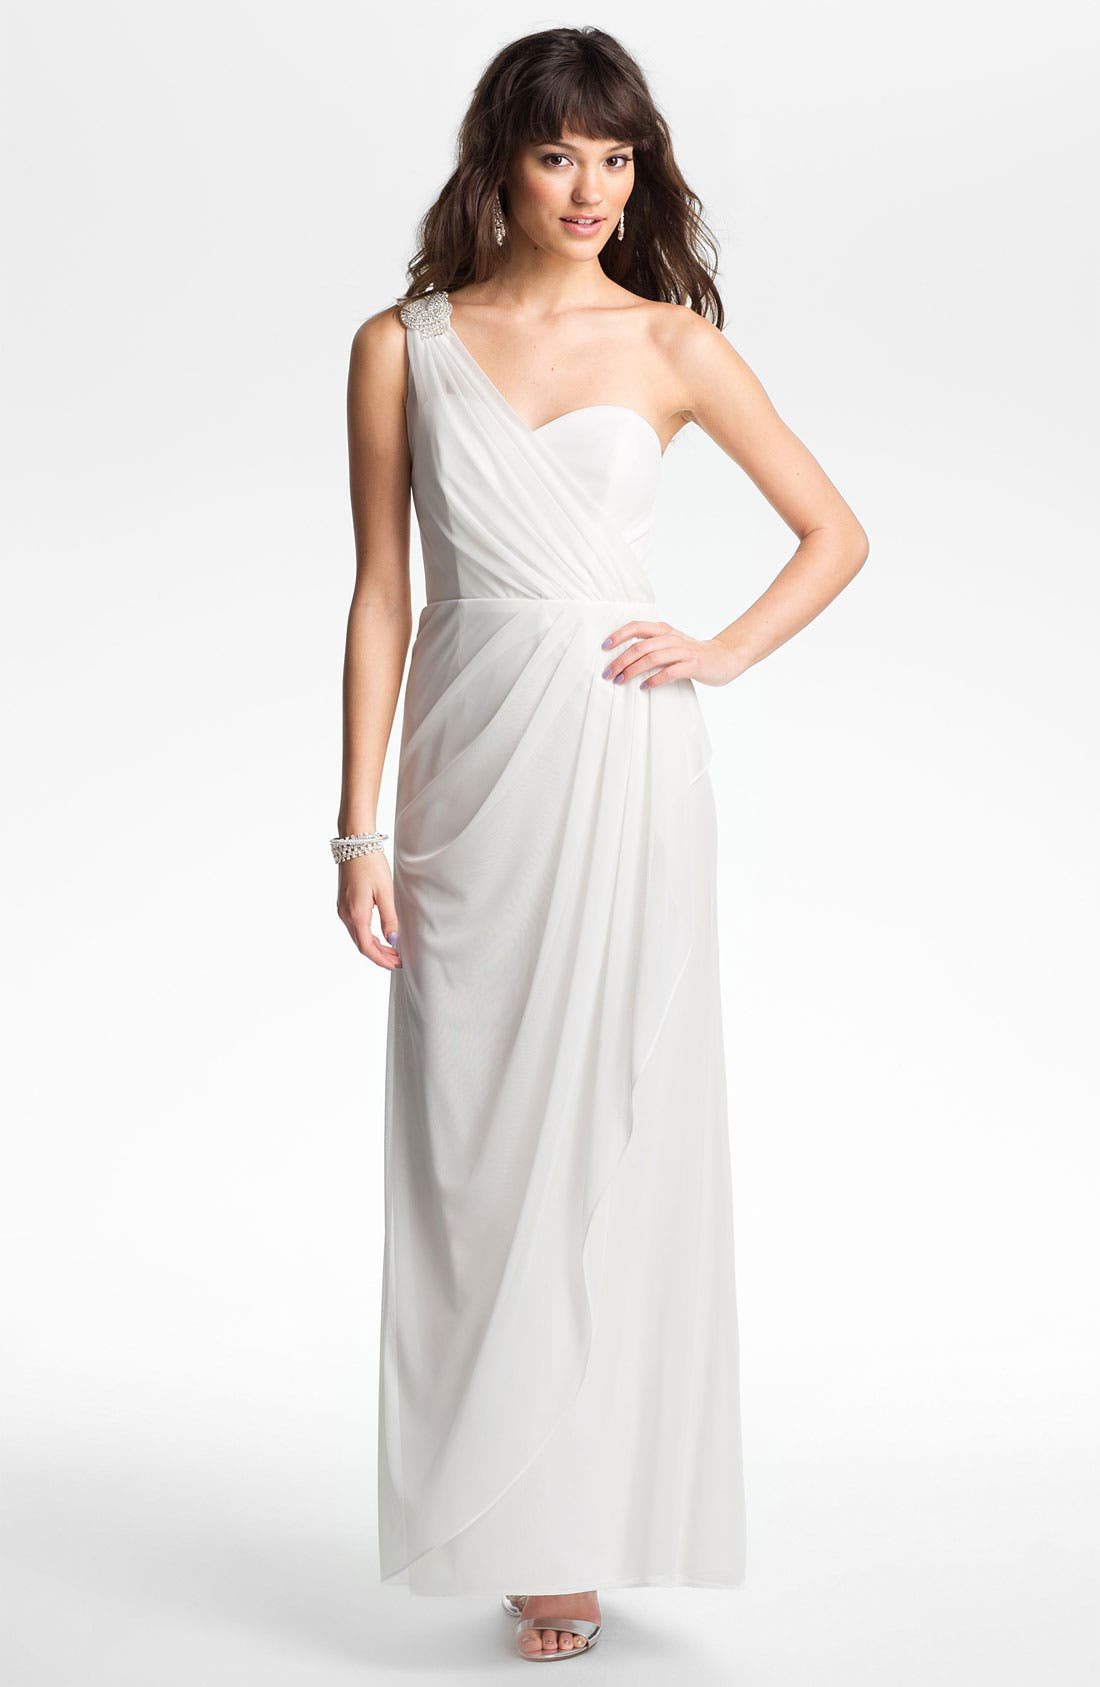 Main Image - Xscape Beaded One Shoulder Sheer Mesh Gown